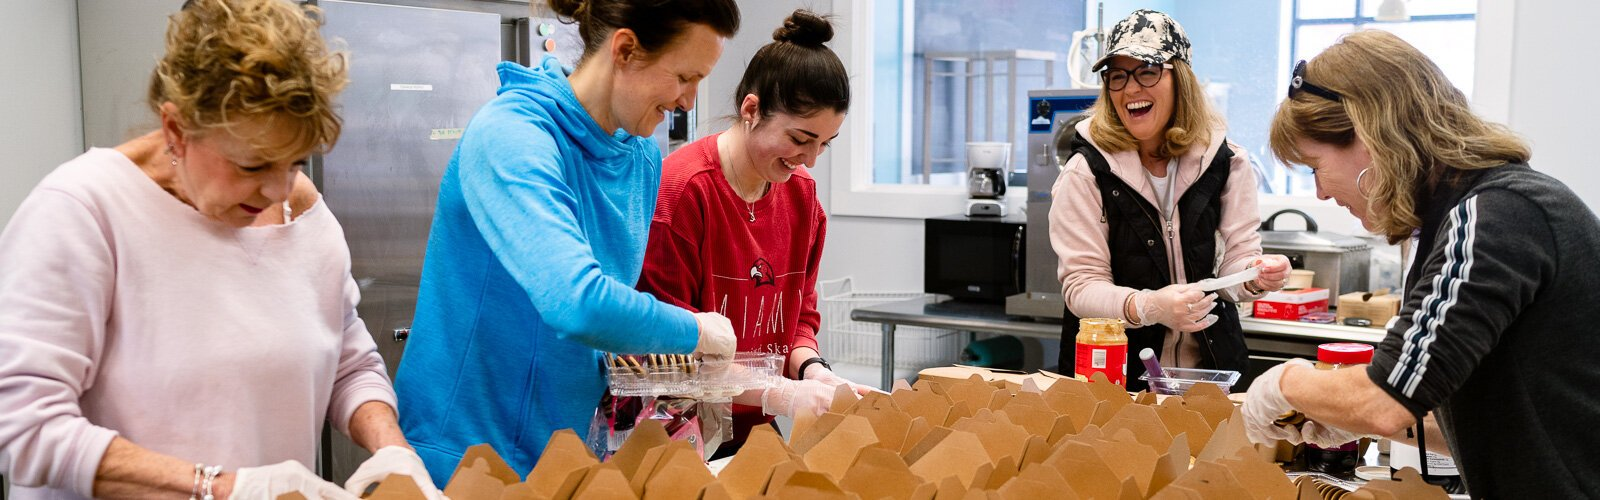 Workers prepare school lunches at Eat More Tea.